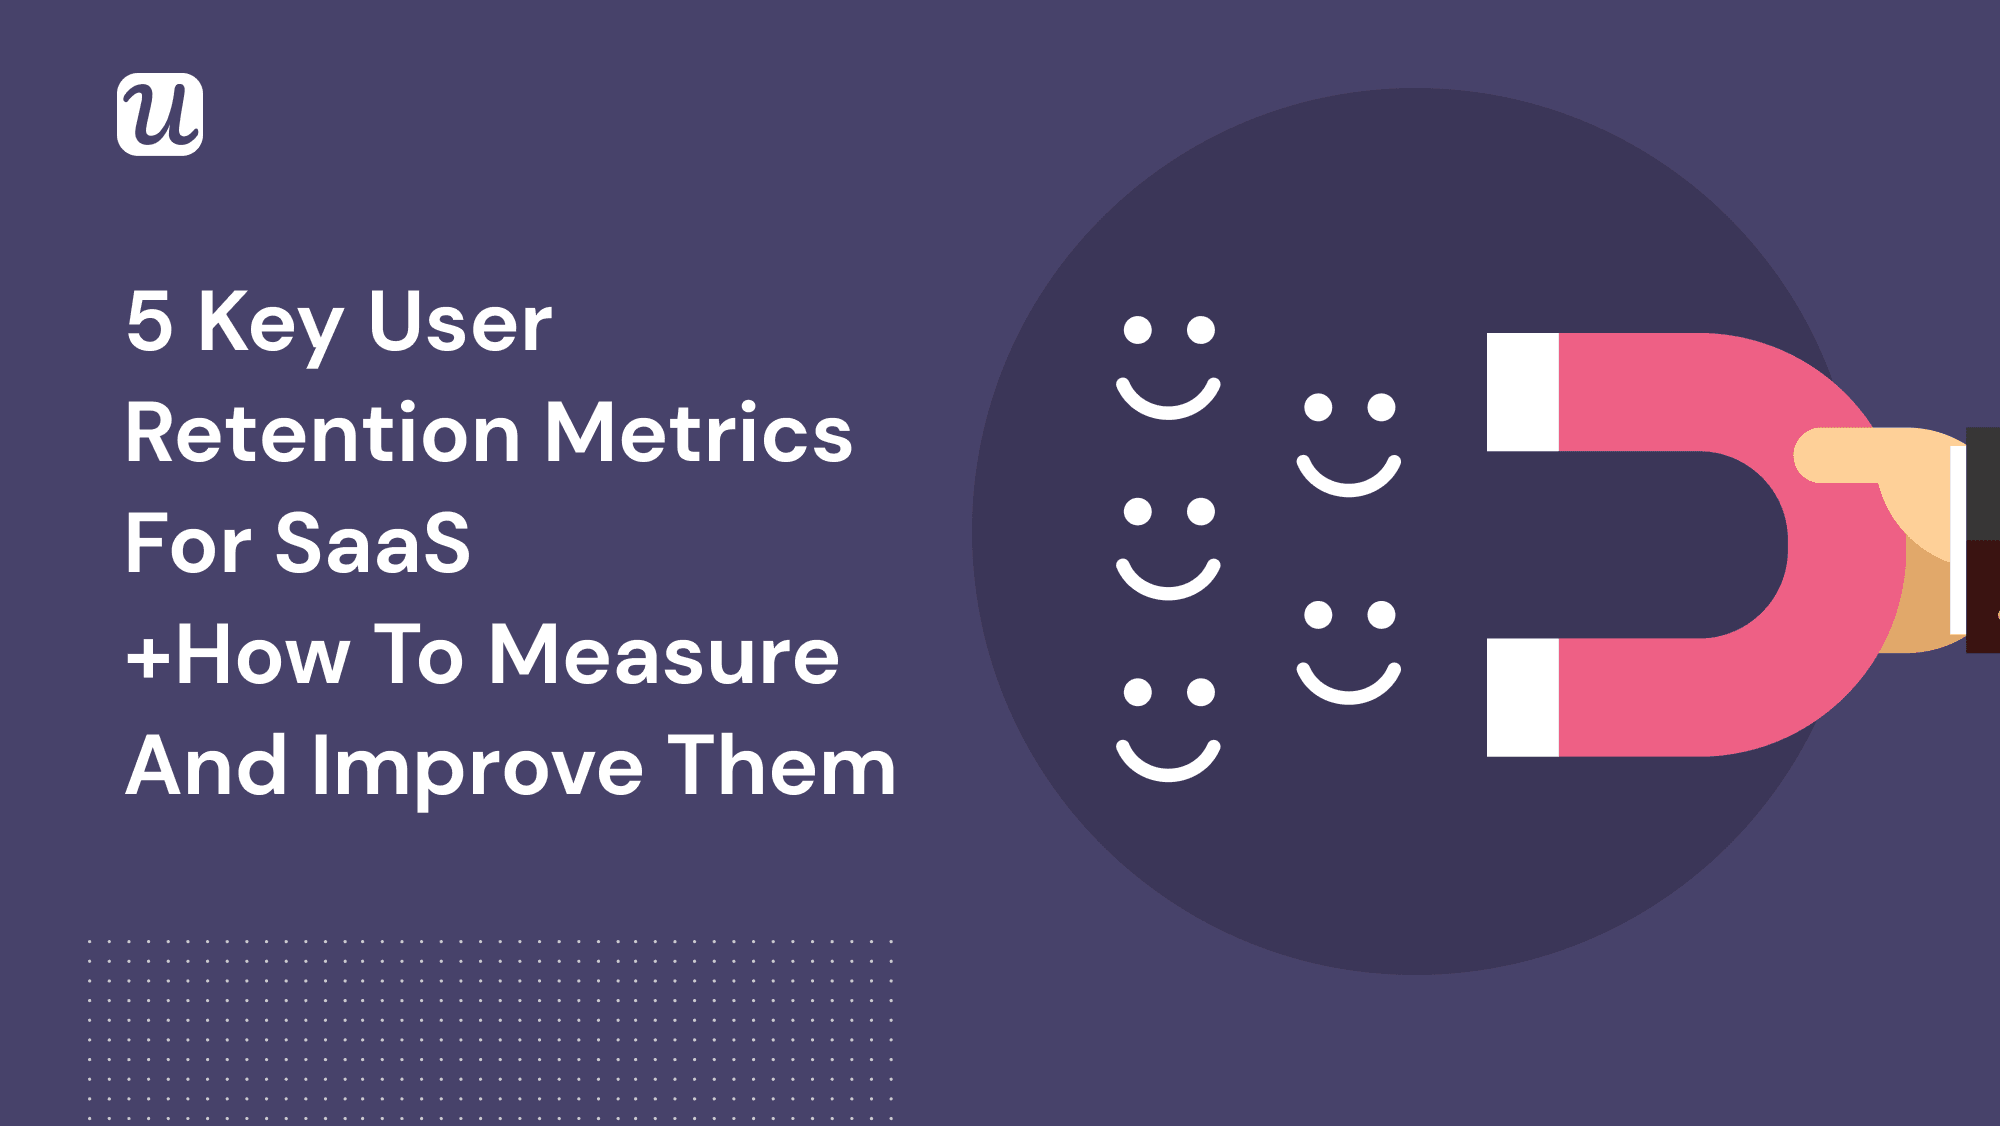 5 Key User Retention Metrics for SaaS [+ How to Measure and Improve Them]